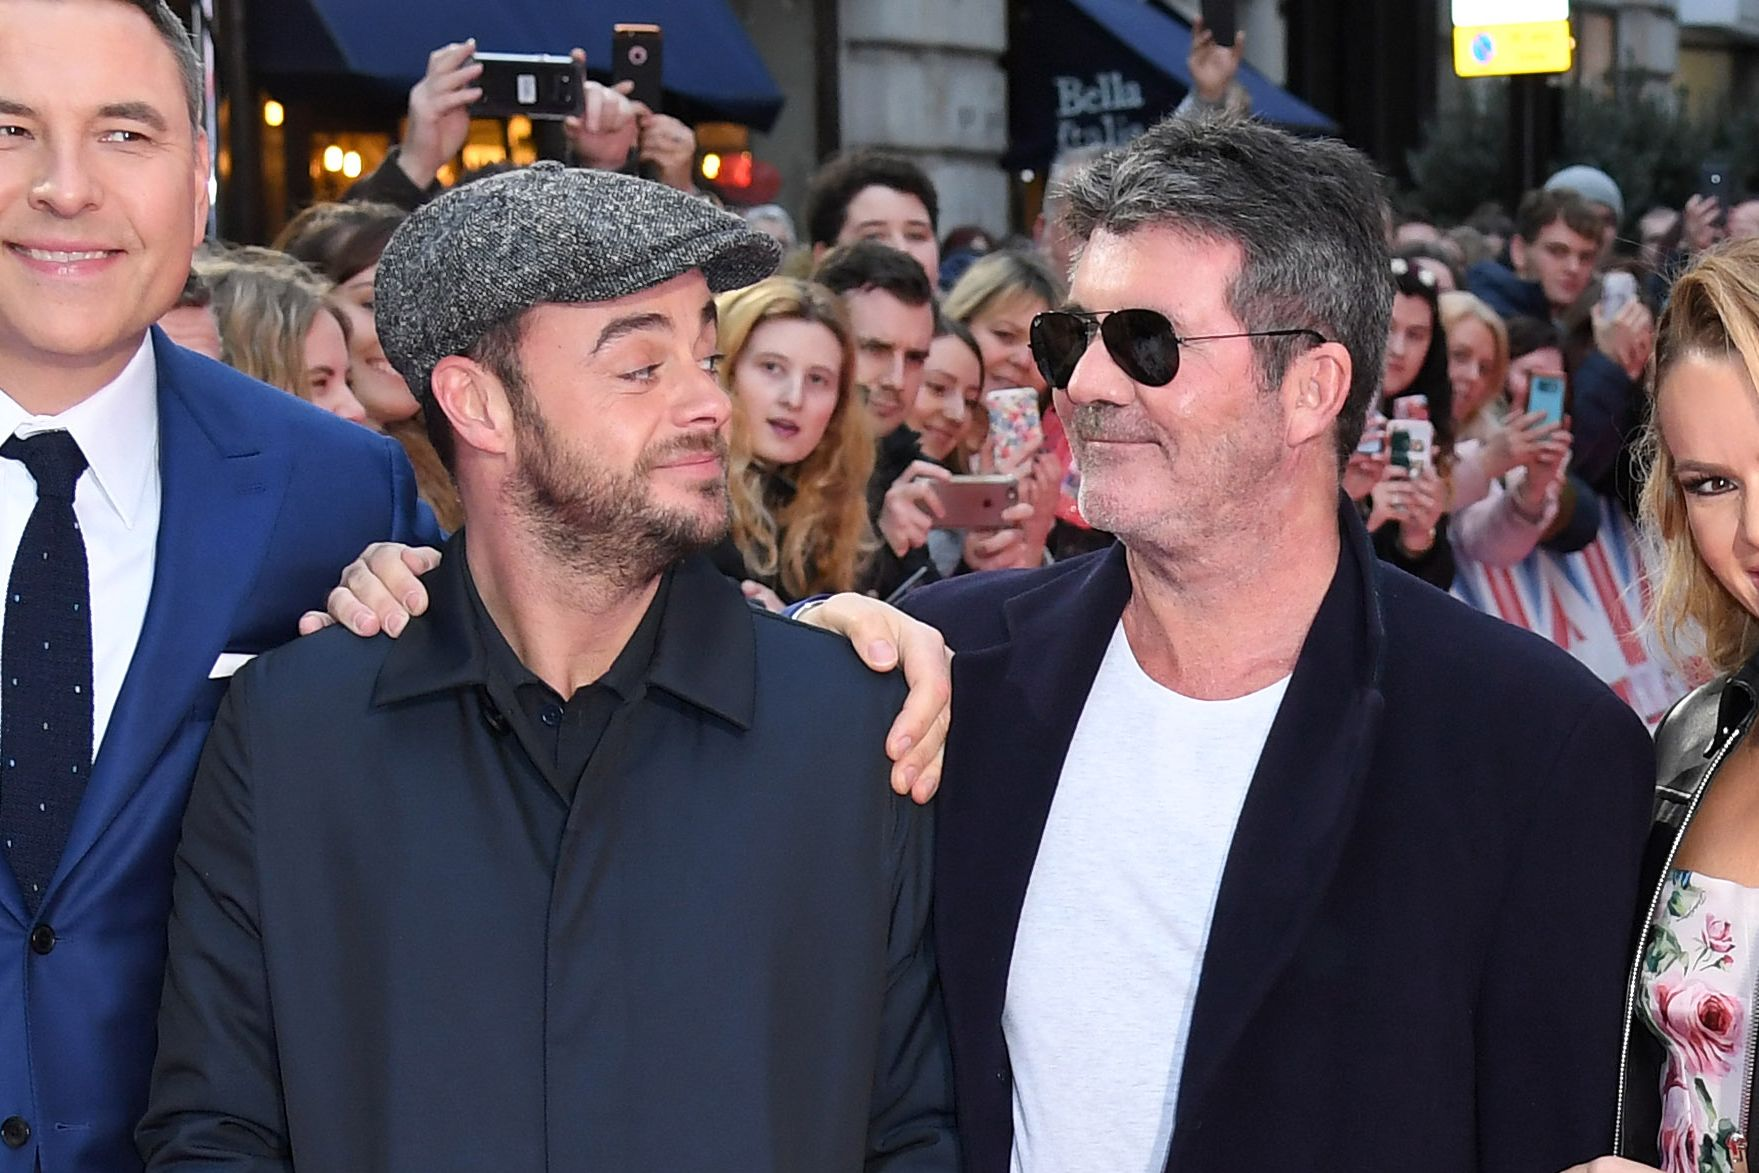 Simon Cowell opens up about Ant McPartlin's return to Britain's Got Talent